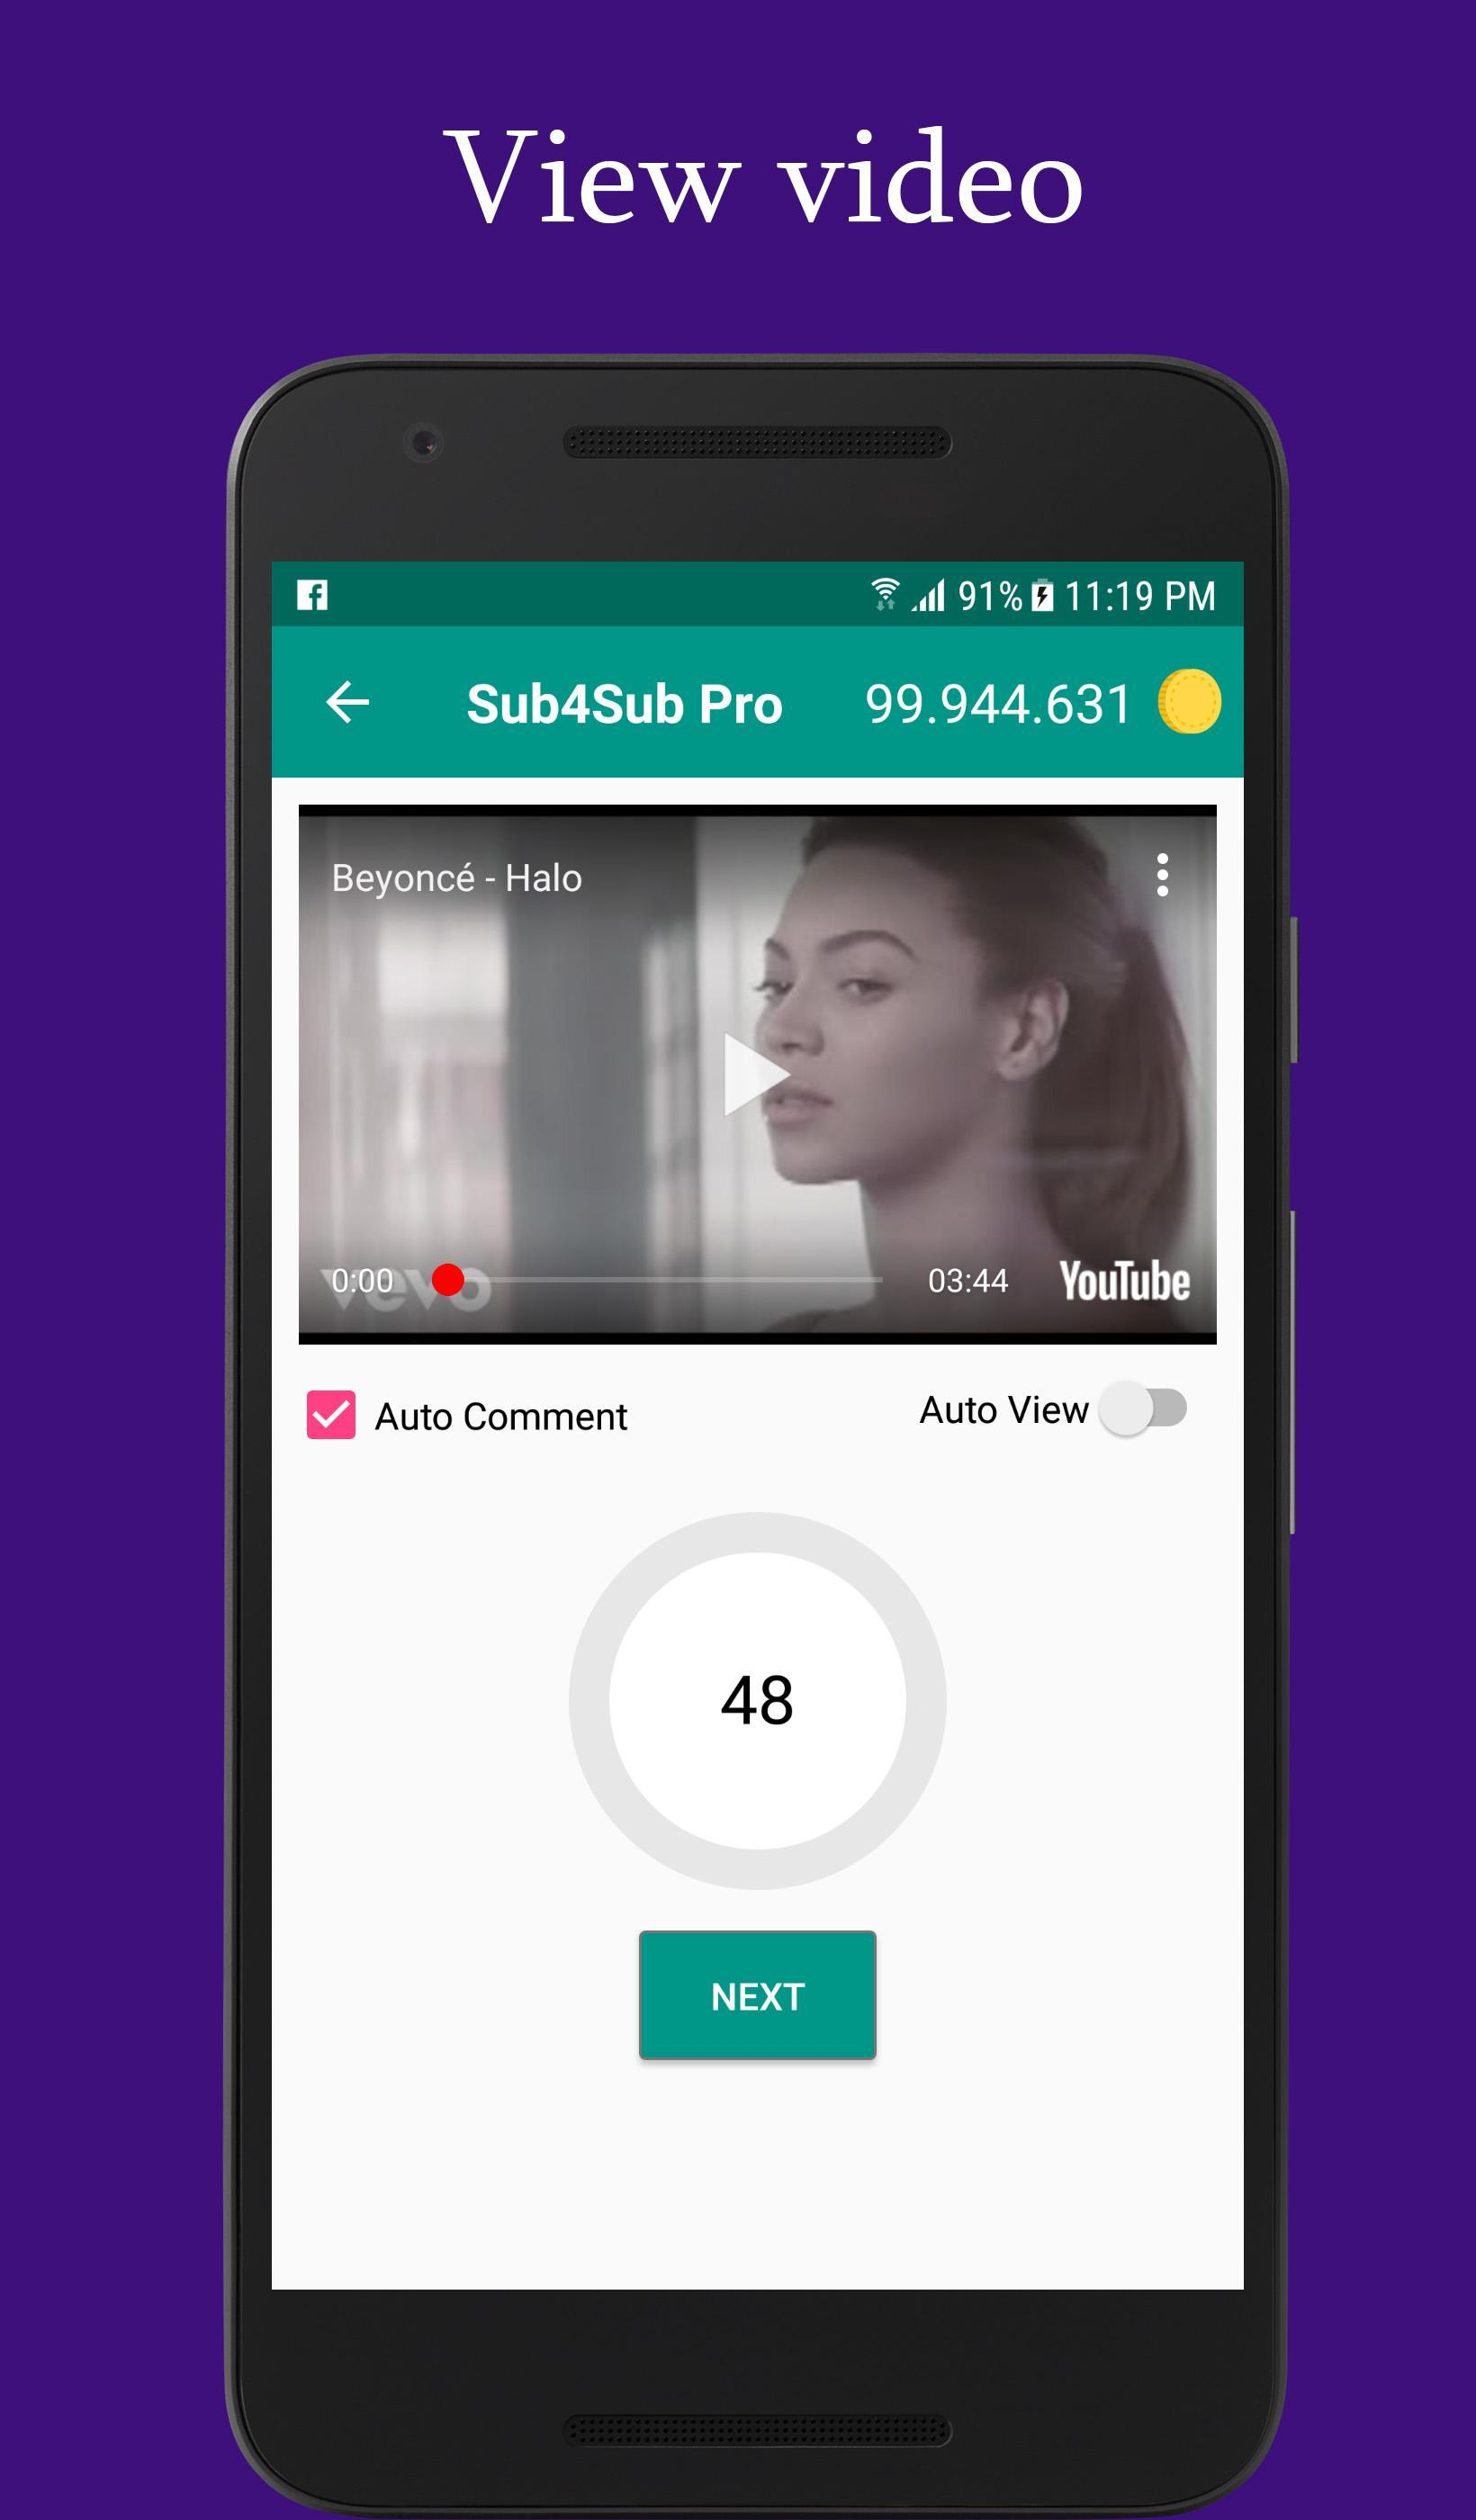 Sub4Sub Pro for Android - APK Download